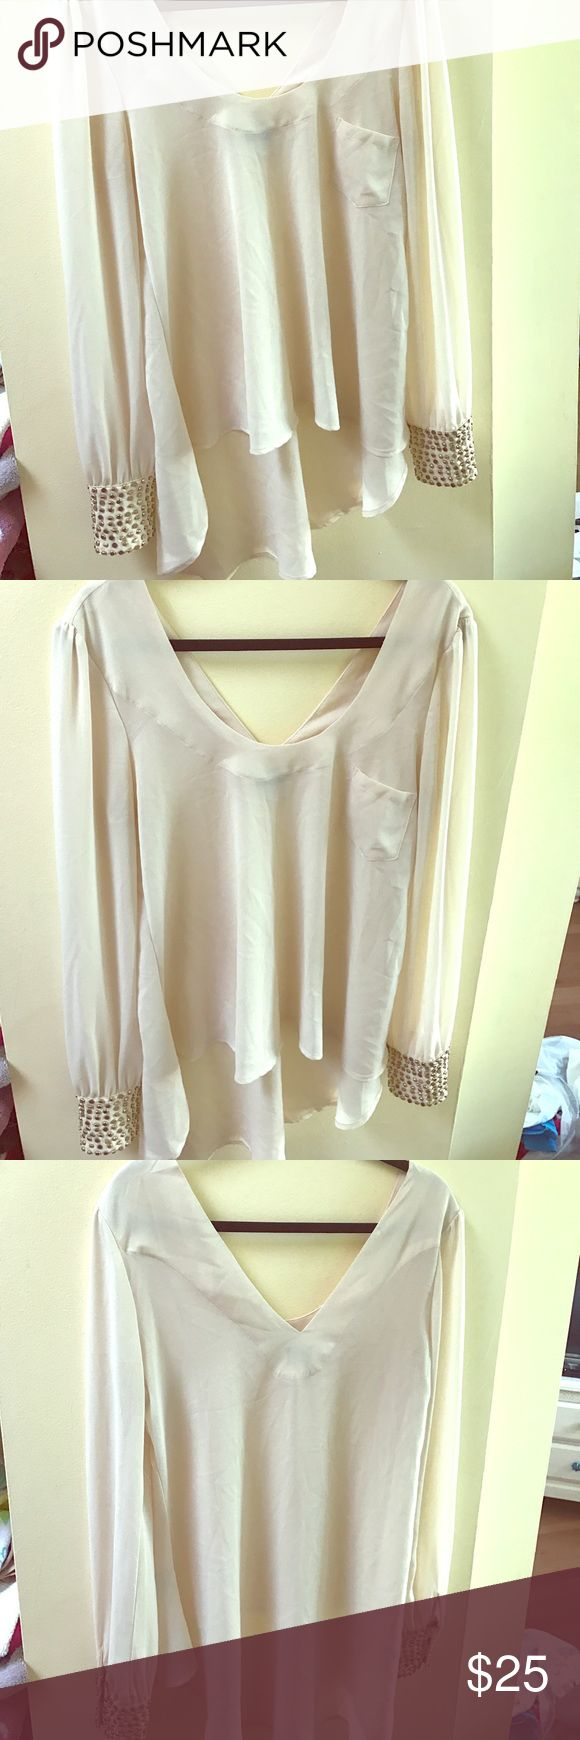 Beige long sleeve top with beaded wrists Loose & light beige colored long sleeved top with gold & brass beads around the wrist. Length is longer in the back. Very trendy. Perfect condition. Very J Tops Tunics